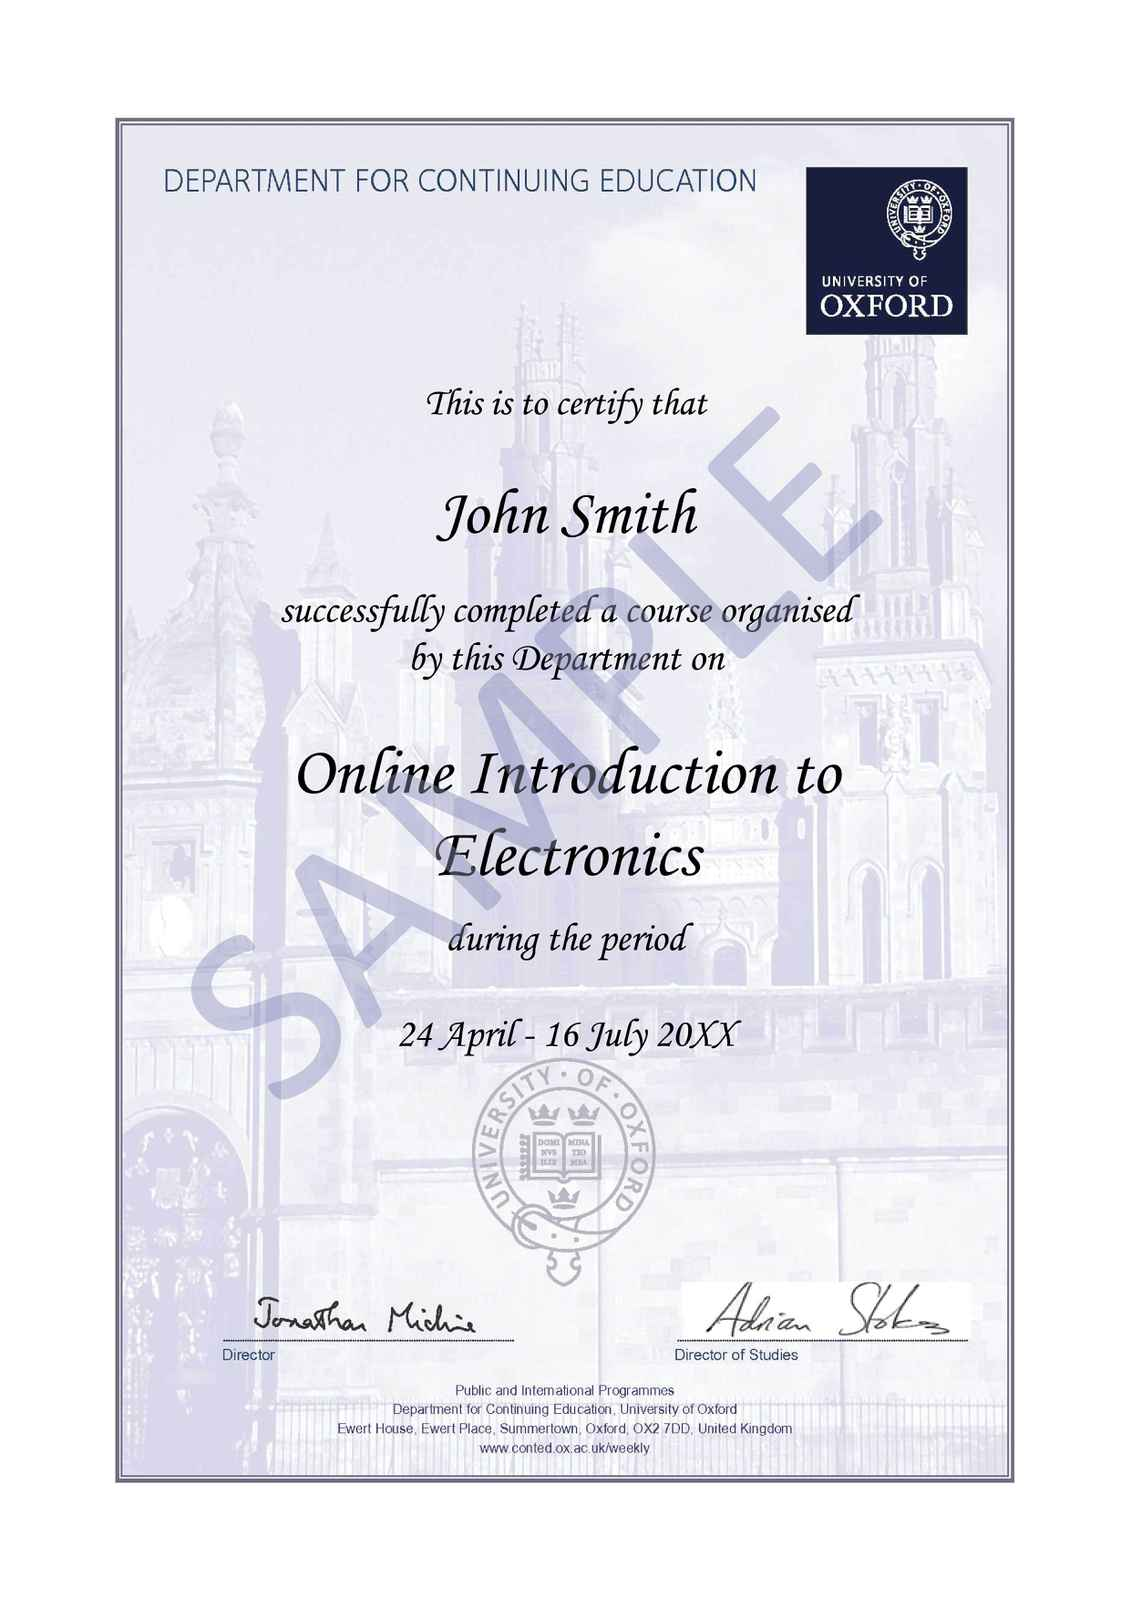 Online Introduction to Electronics | Oxford University Department ...